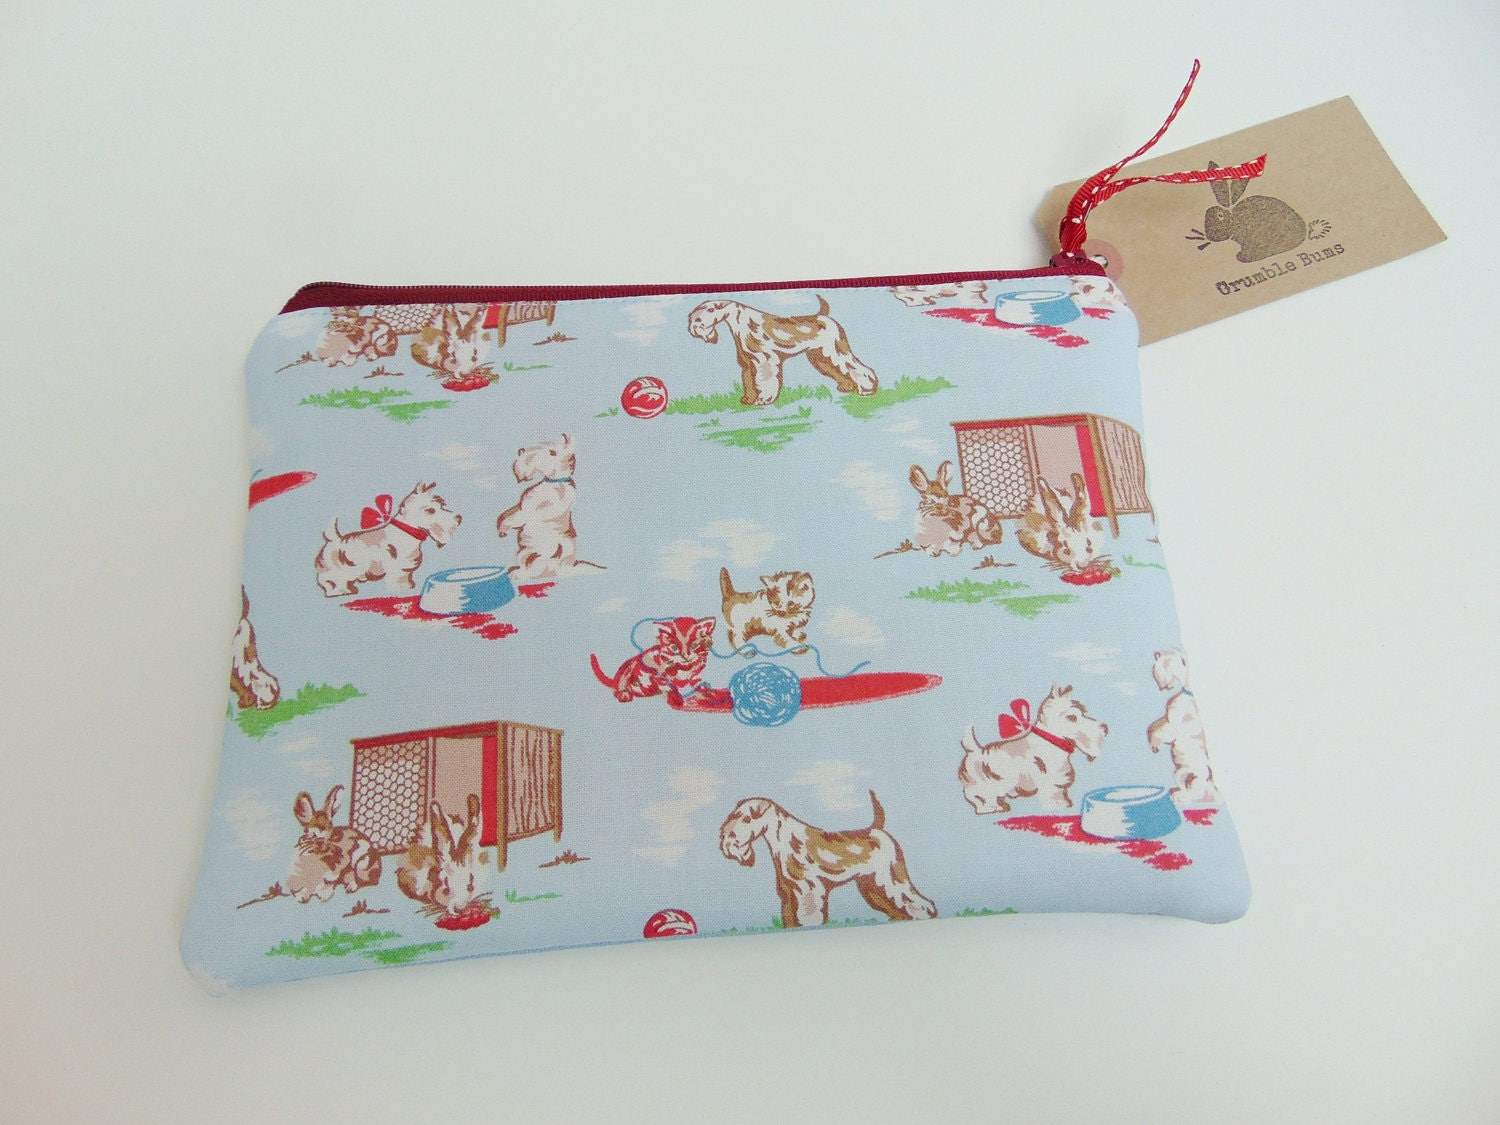 Handmade Cath Kidston Animals Fabric Makeup Bag Rare Vintage Print Westie Dogs Kitsch Rabbits Padded Pouch